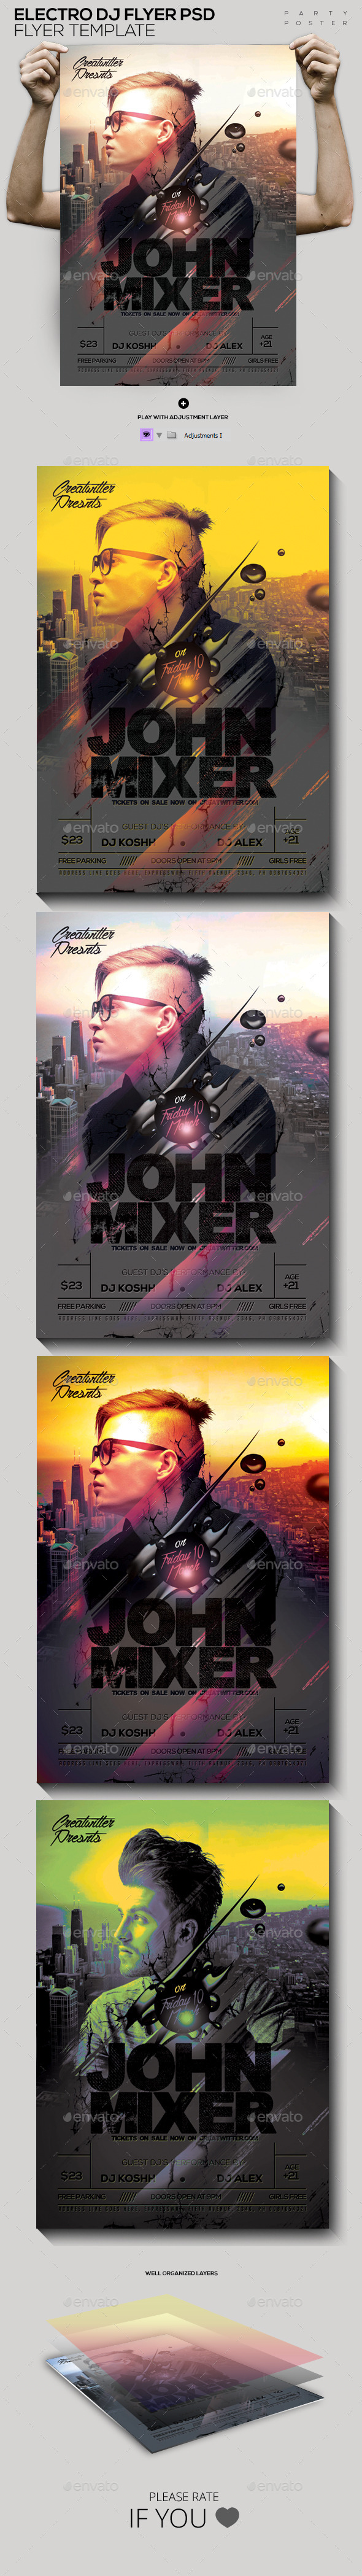 GraphicRiver Electro Guest DJ Flyer PSD 11913644